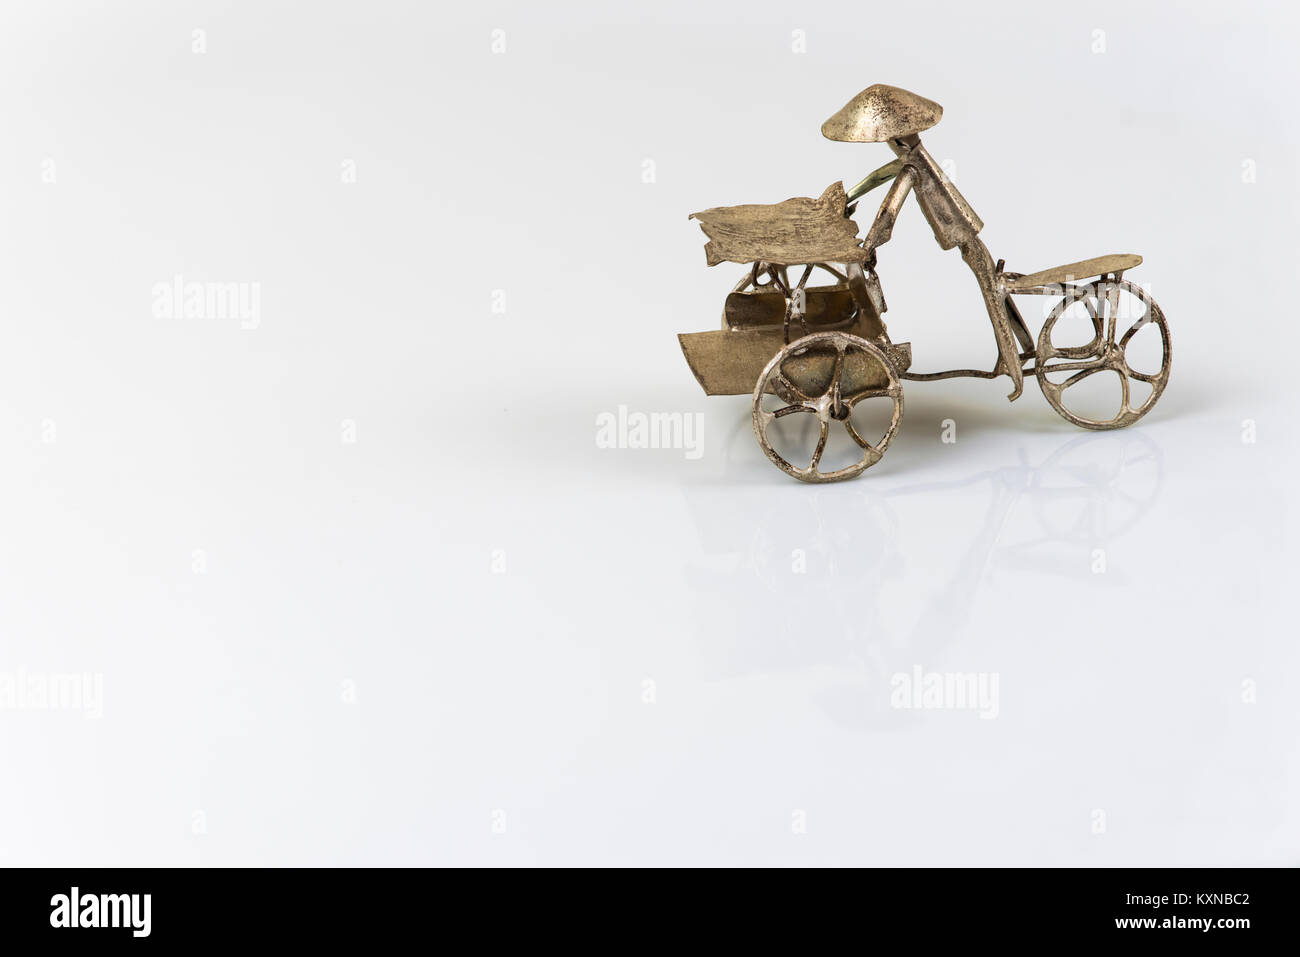 Far eastern three wheel bicycle figurine isolated on white background made of metal - Stock Image